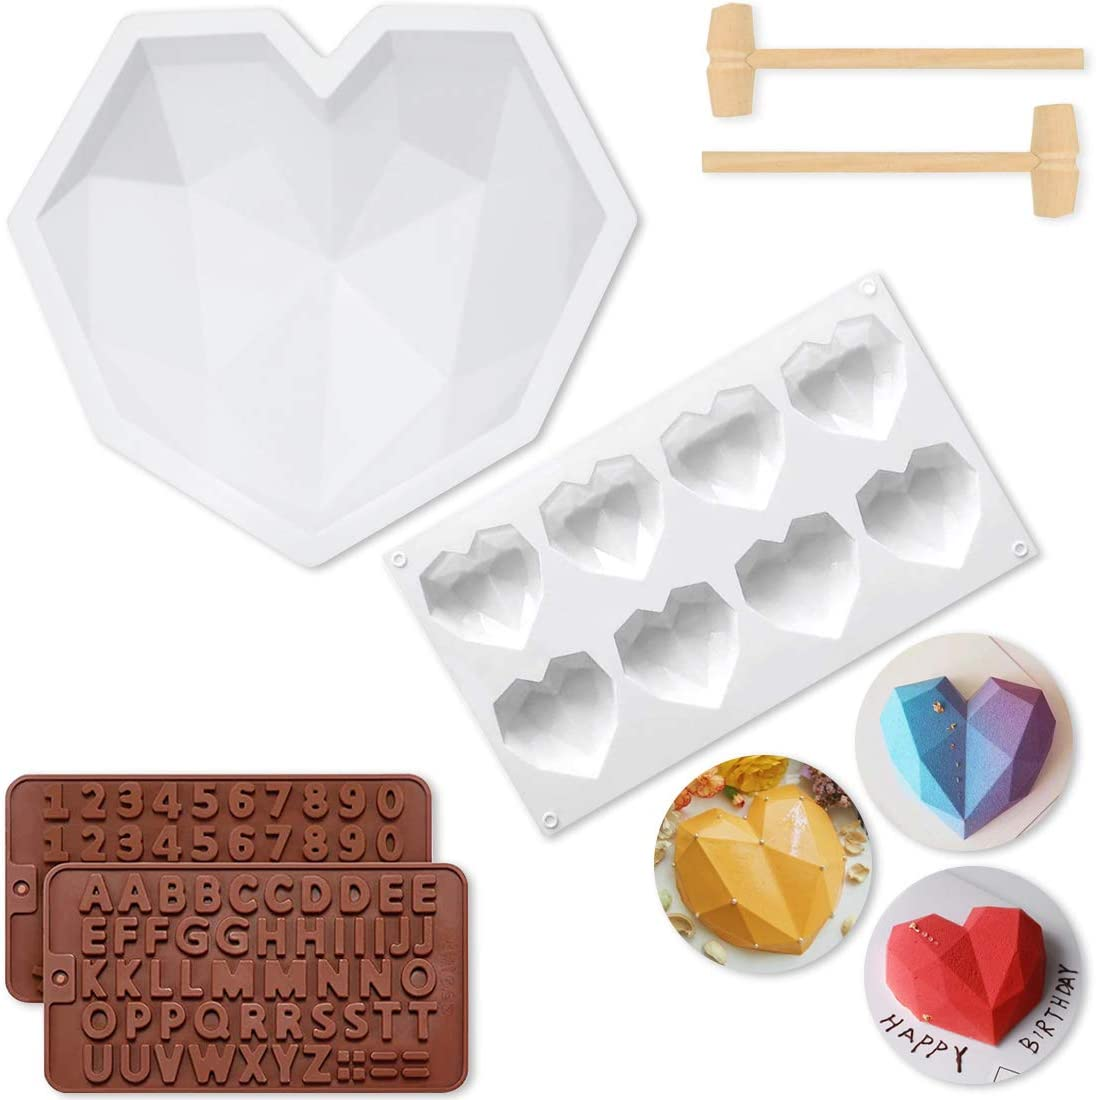 Diamond Heart Shape Silicone Mold Tray for Baking Mousse Cake,8 Cavities Love-shaped Hot Chocolate Molds, Non-Stick Letter Number Chocolate Molds with 2 Pieces Mini Wooden Hammers